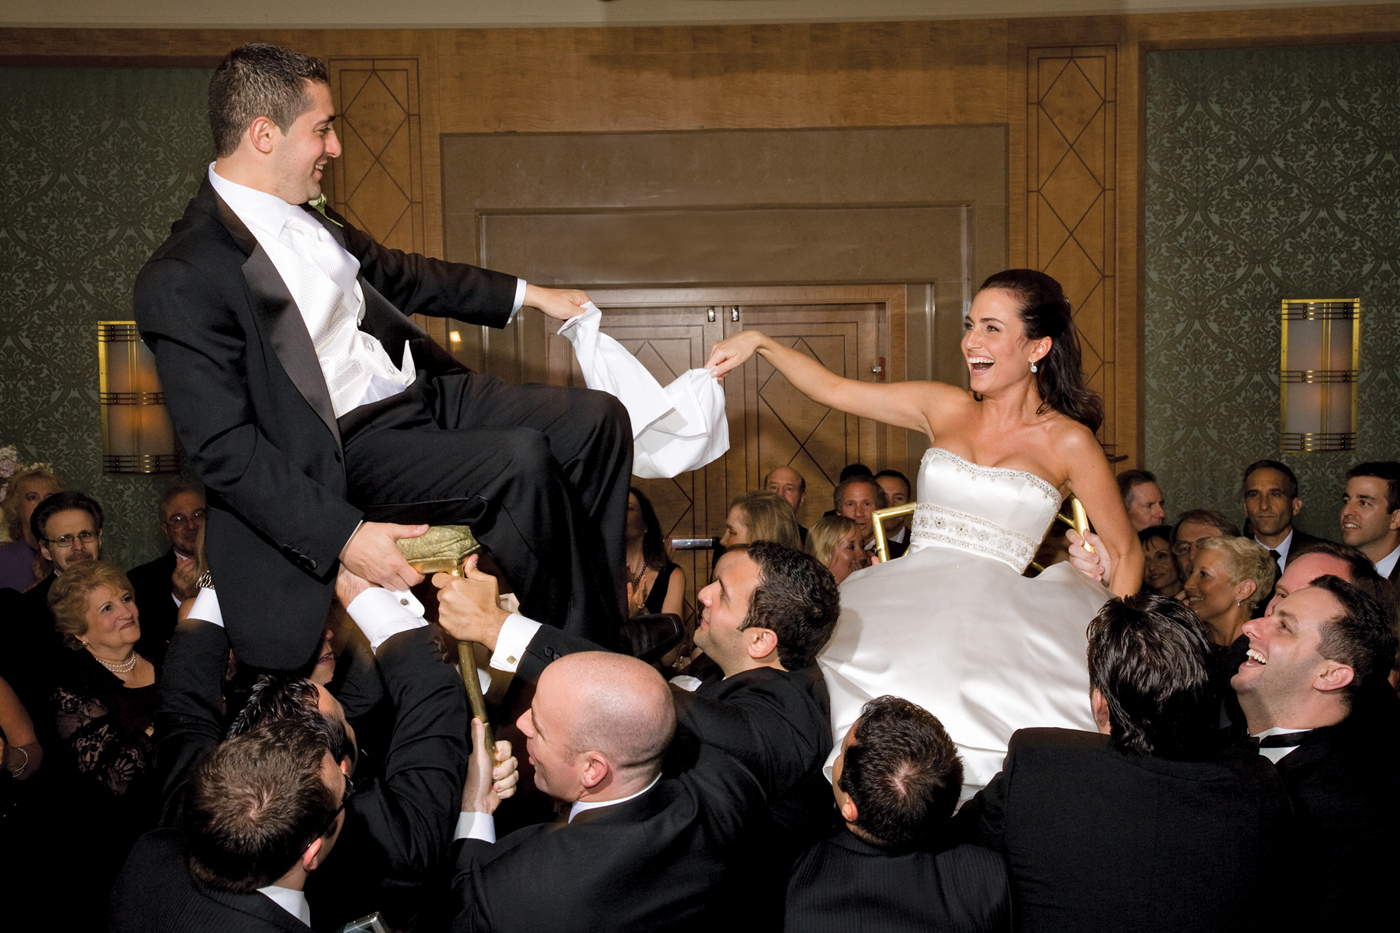 chair dance ritual song oversized slipcovers jewish wedding traditions